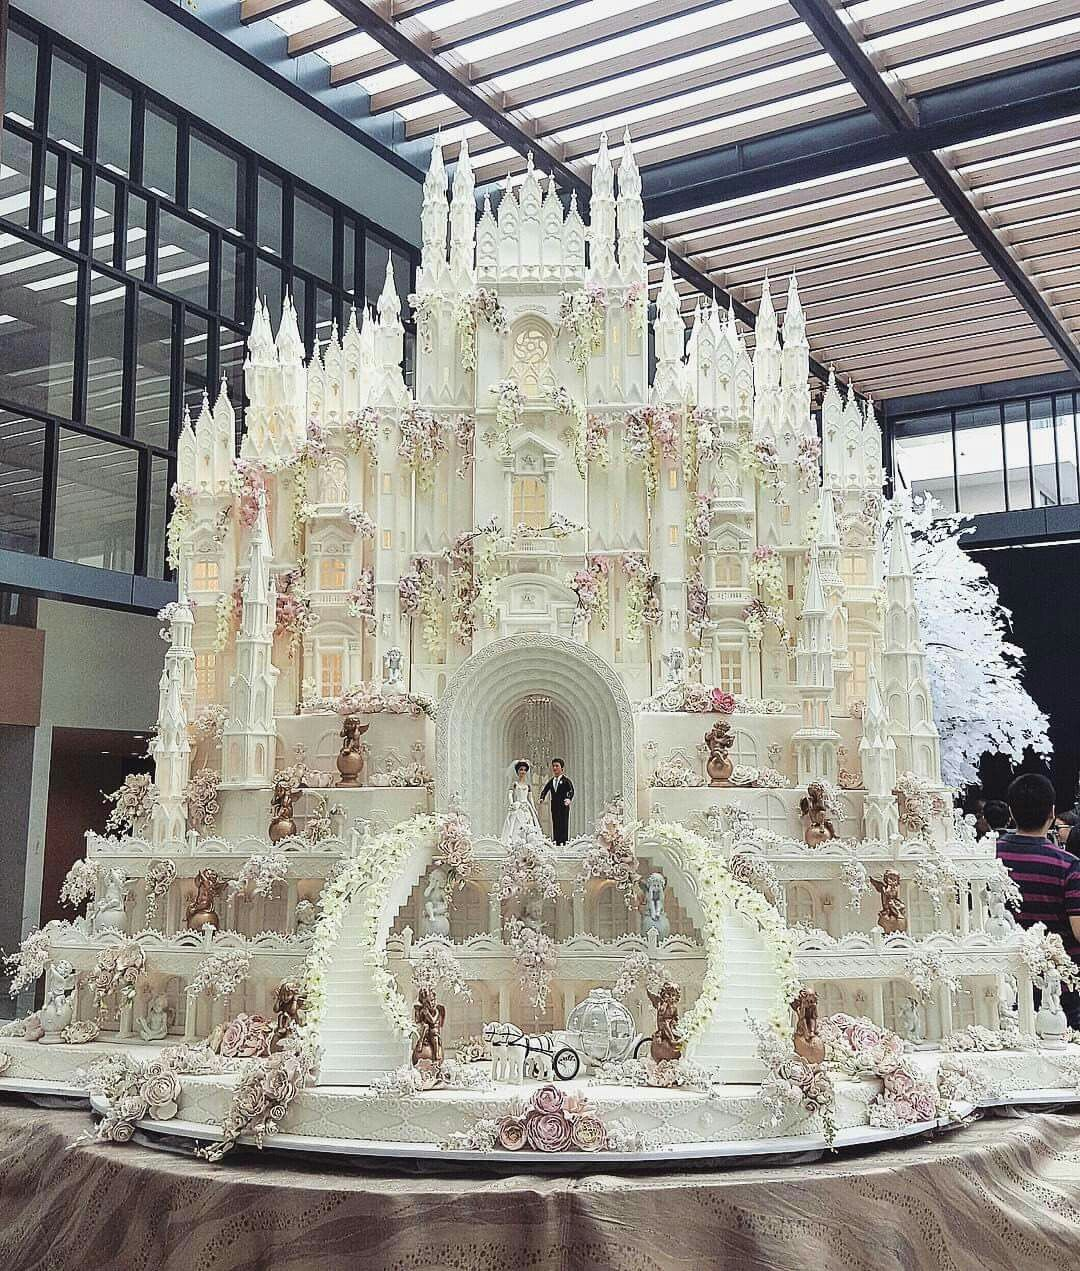 castle wedding cakes pictures can you believe this is a wedding cake wedding cake 12443